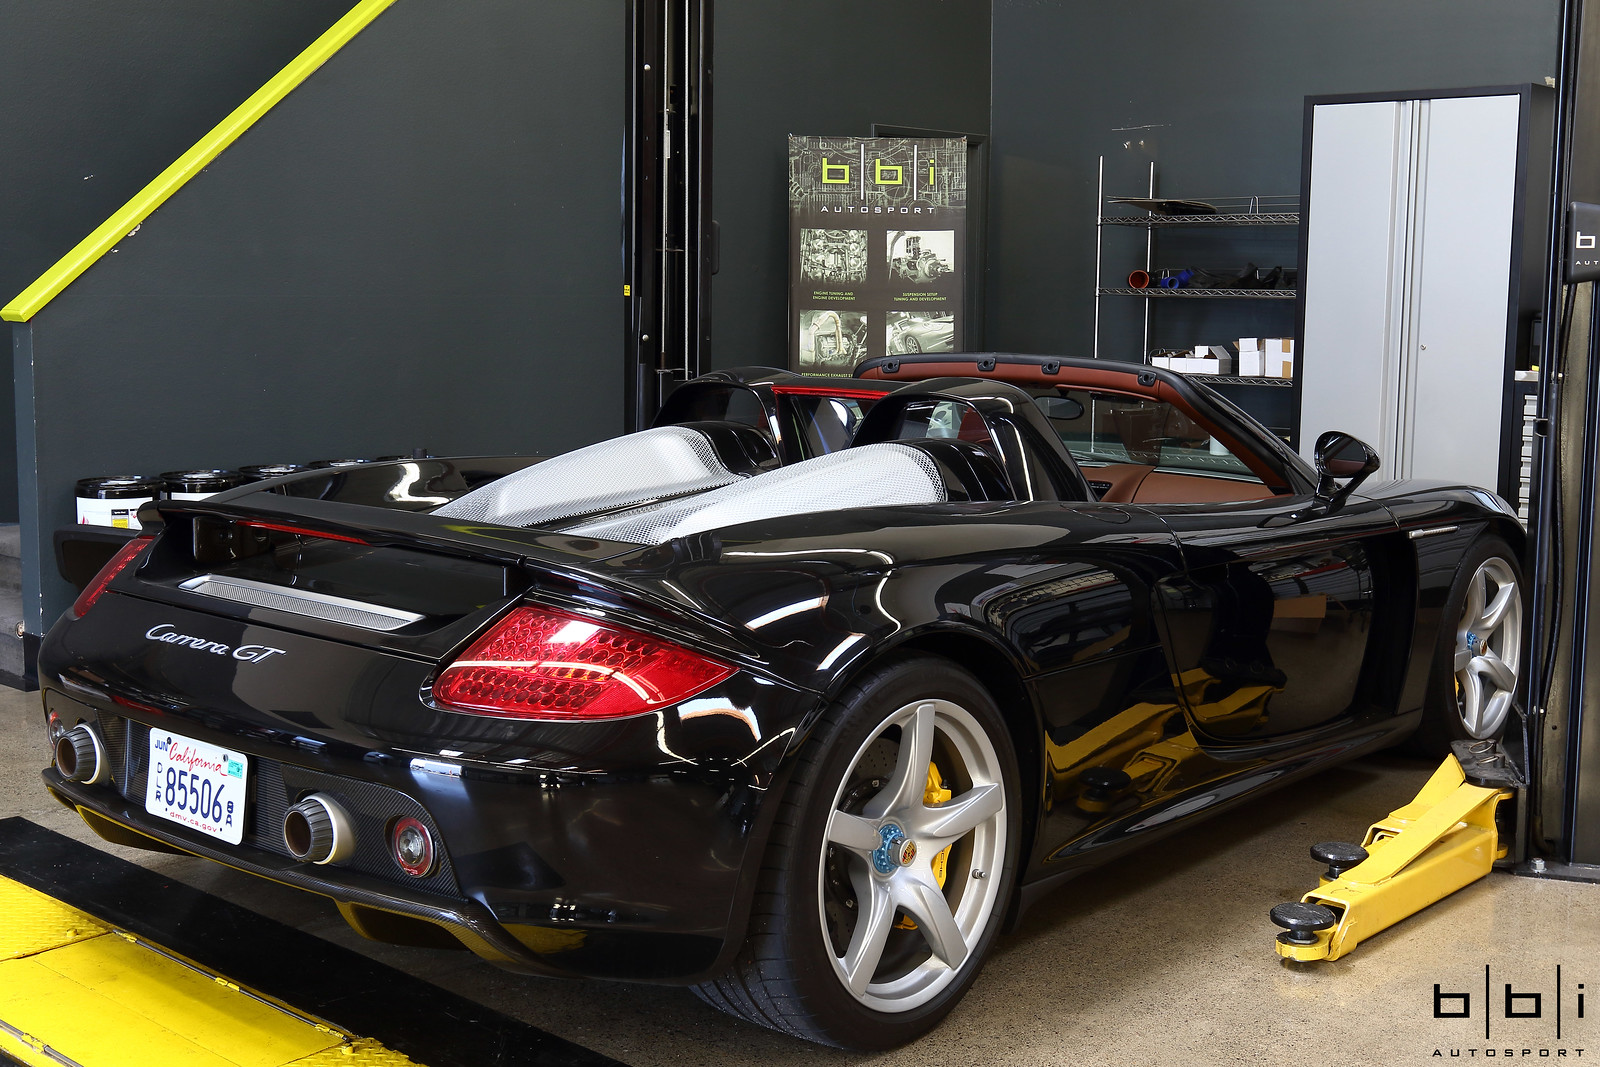 black porsche carrera gt 0967 at bbi autosport for annual service rennlist porsche. Black Bedroom Furniture Sets. Home Design Ideas